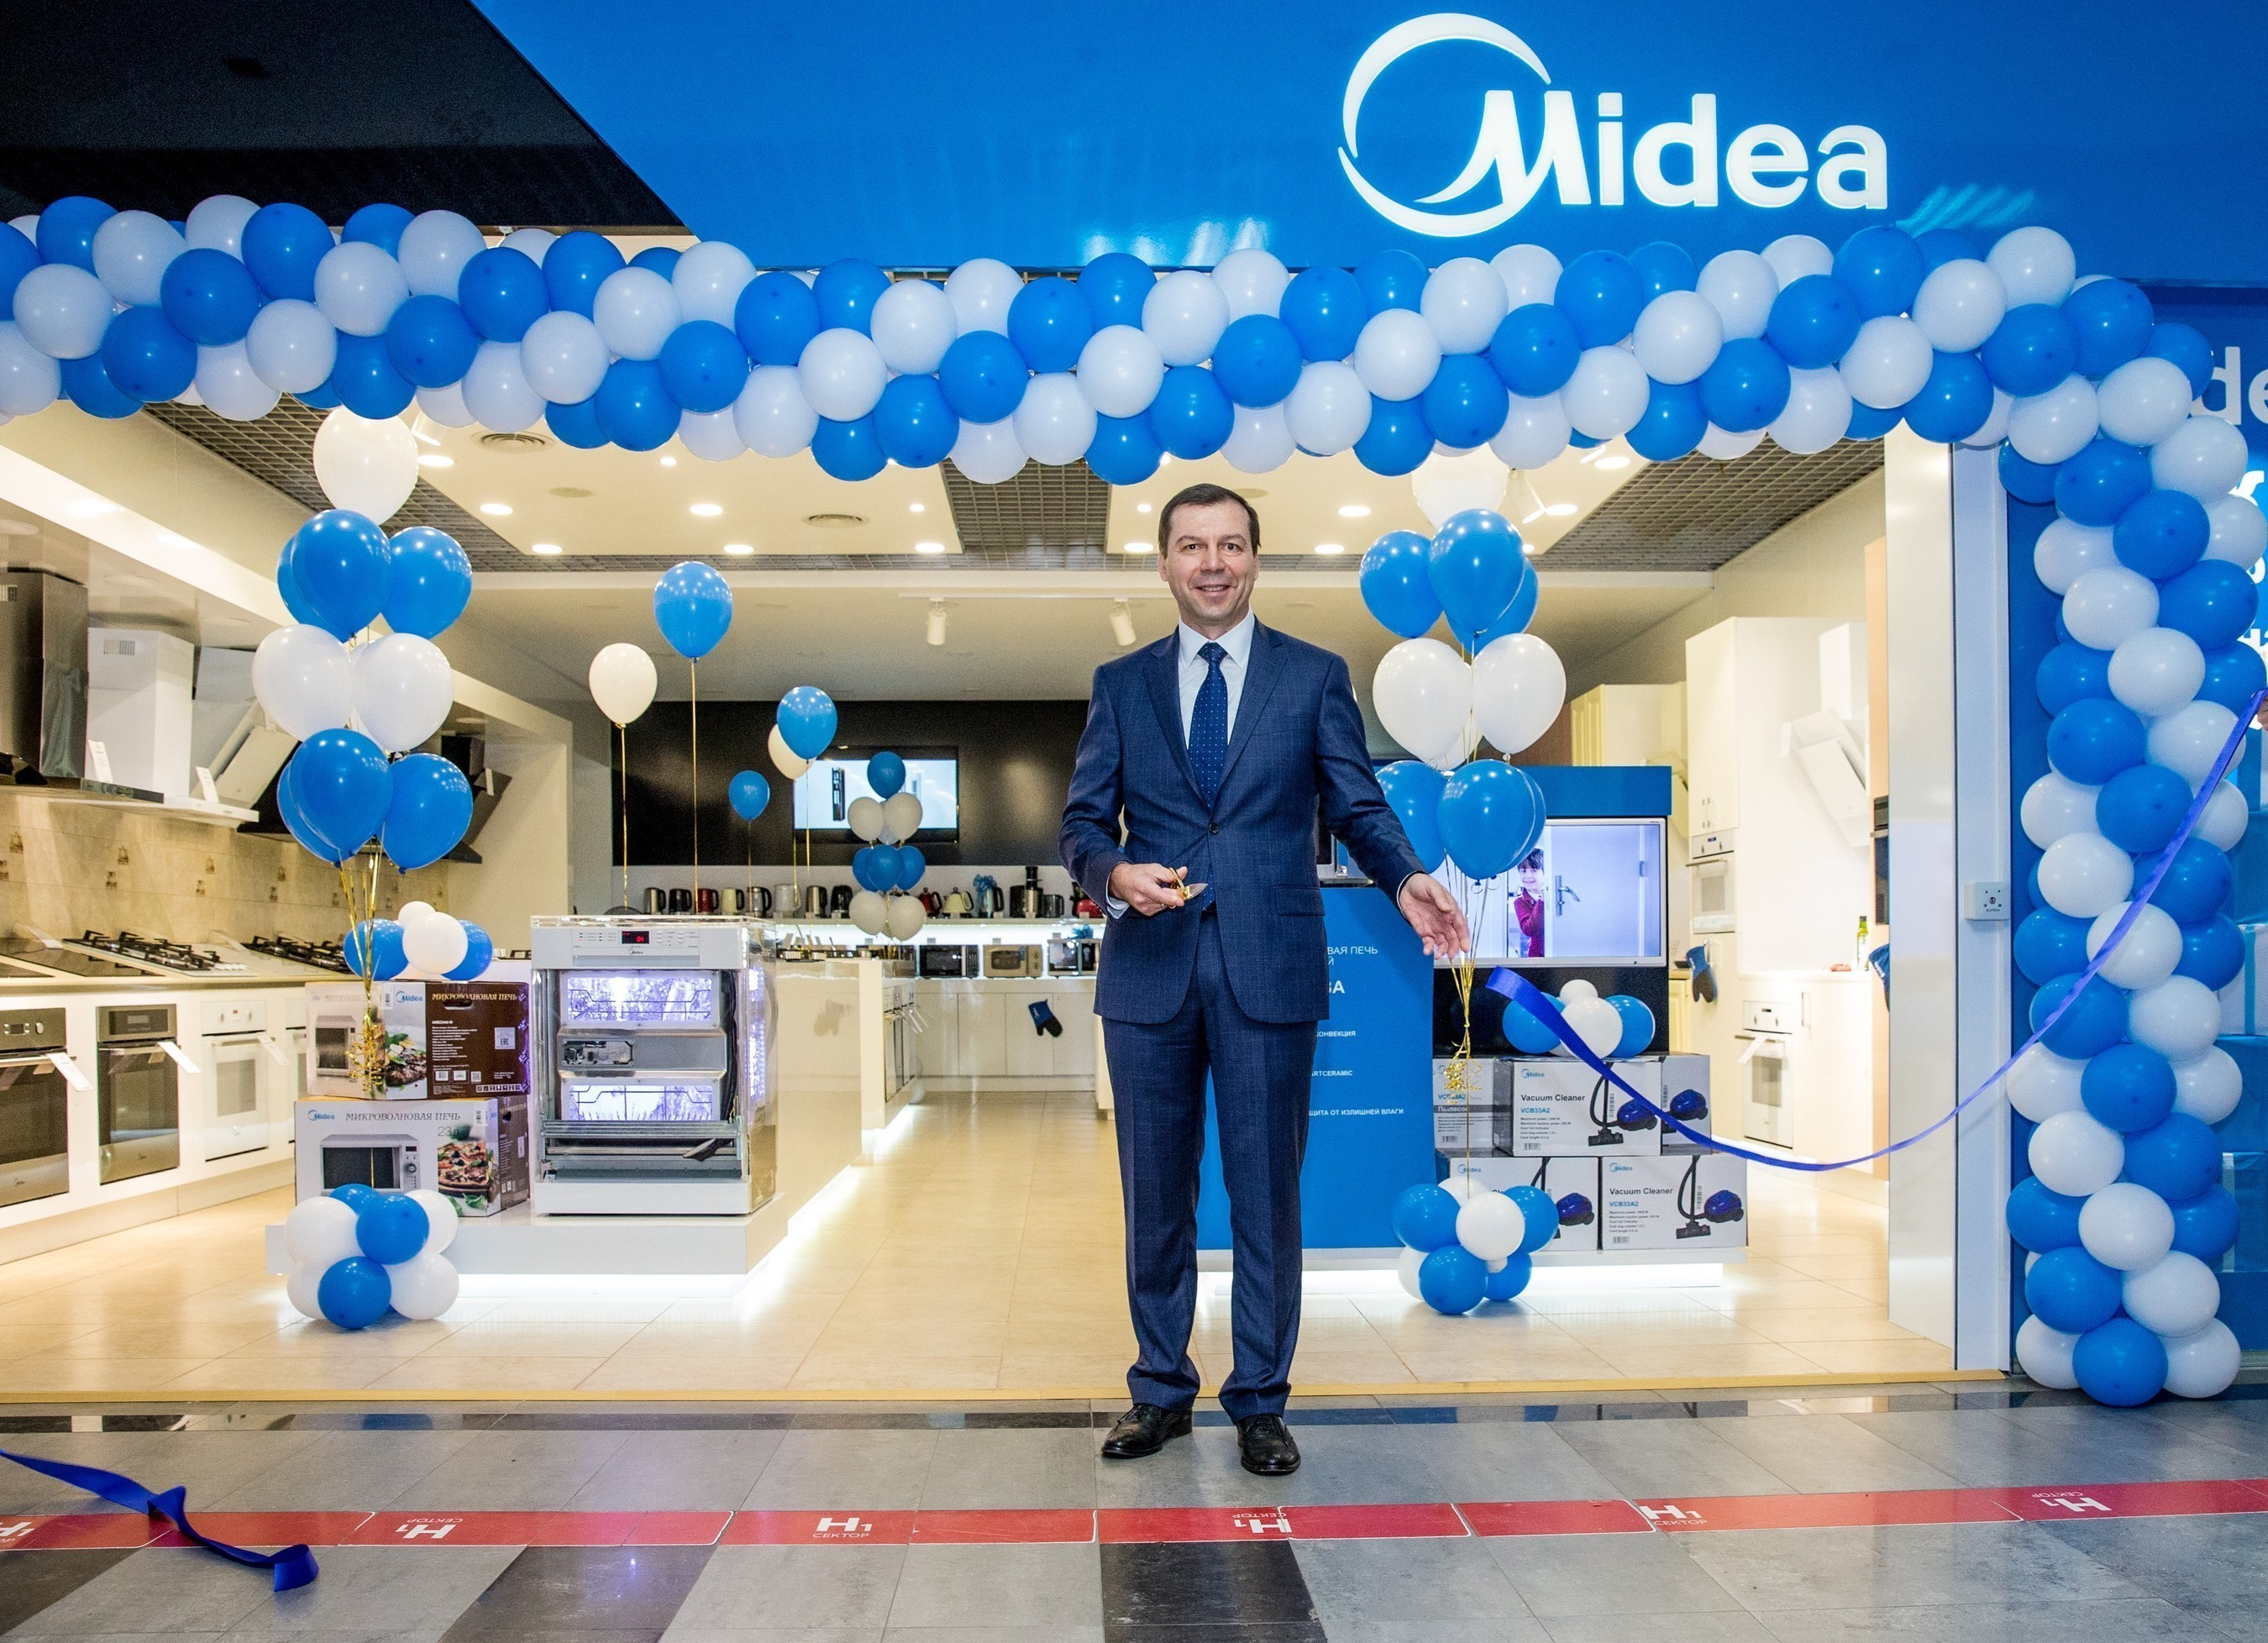 Leading consumer appliances manufacturer Midea held the grand opening of the first brand store in Moscow, Russia on July 21